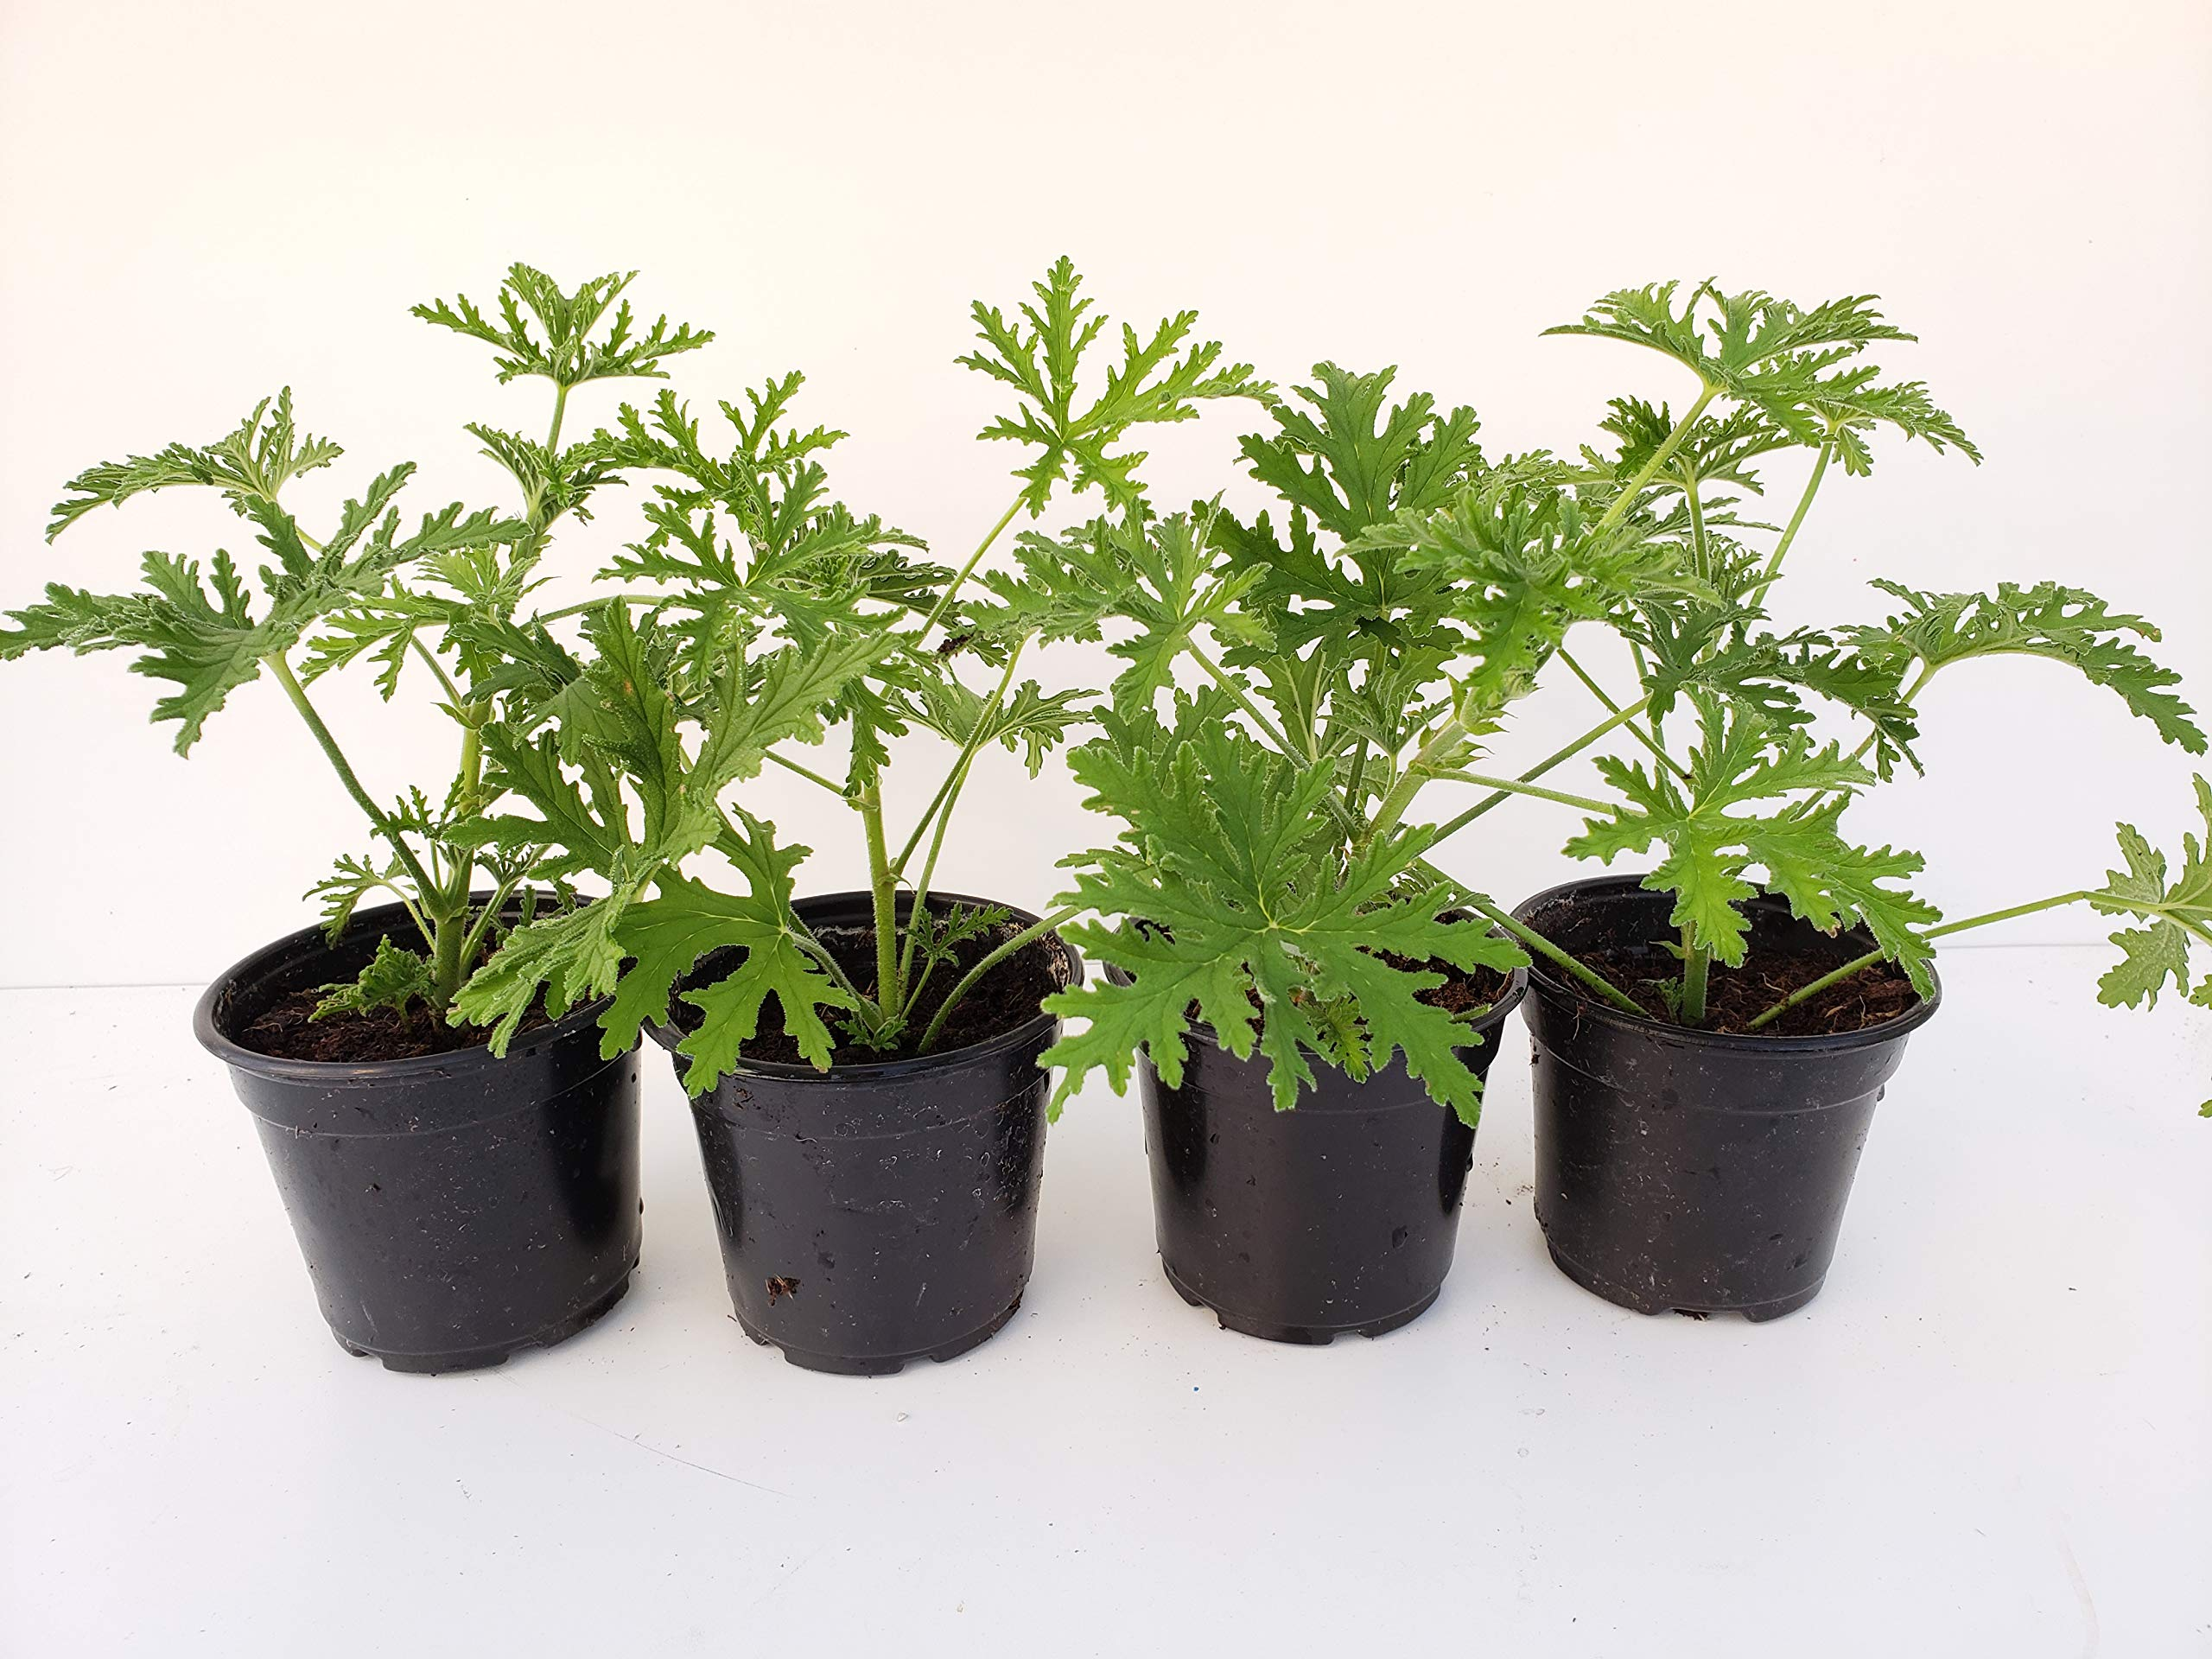 Live Citronella Starter Plants - 4 Pack of Citrosa Mosquito Plants - Scented Geranium